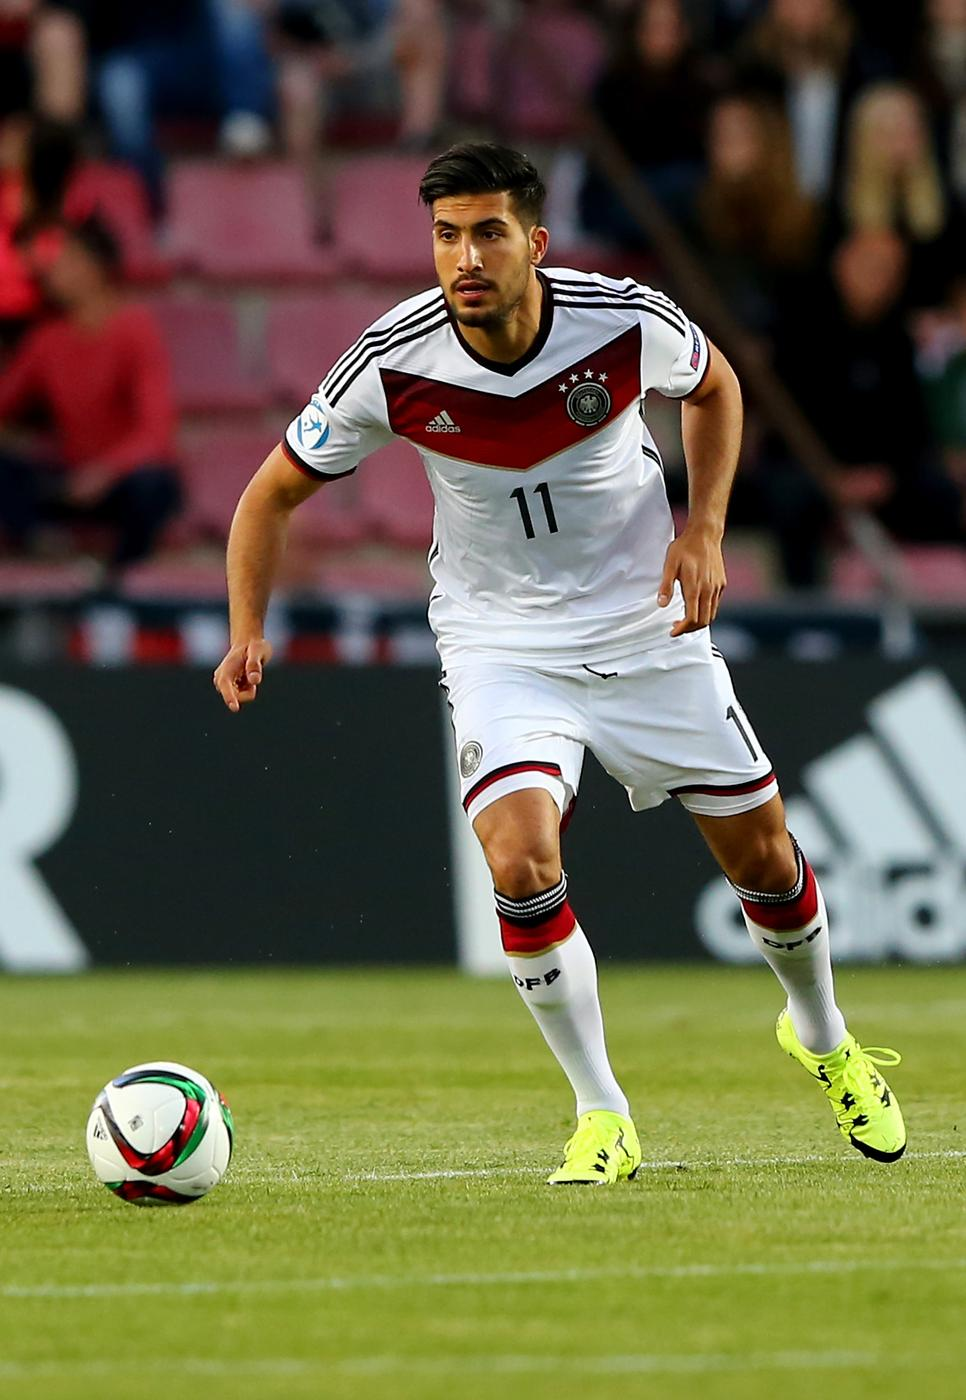 Emre Can must star in Liverpool's midfield next season